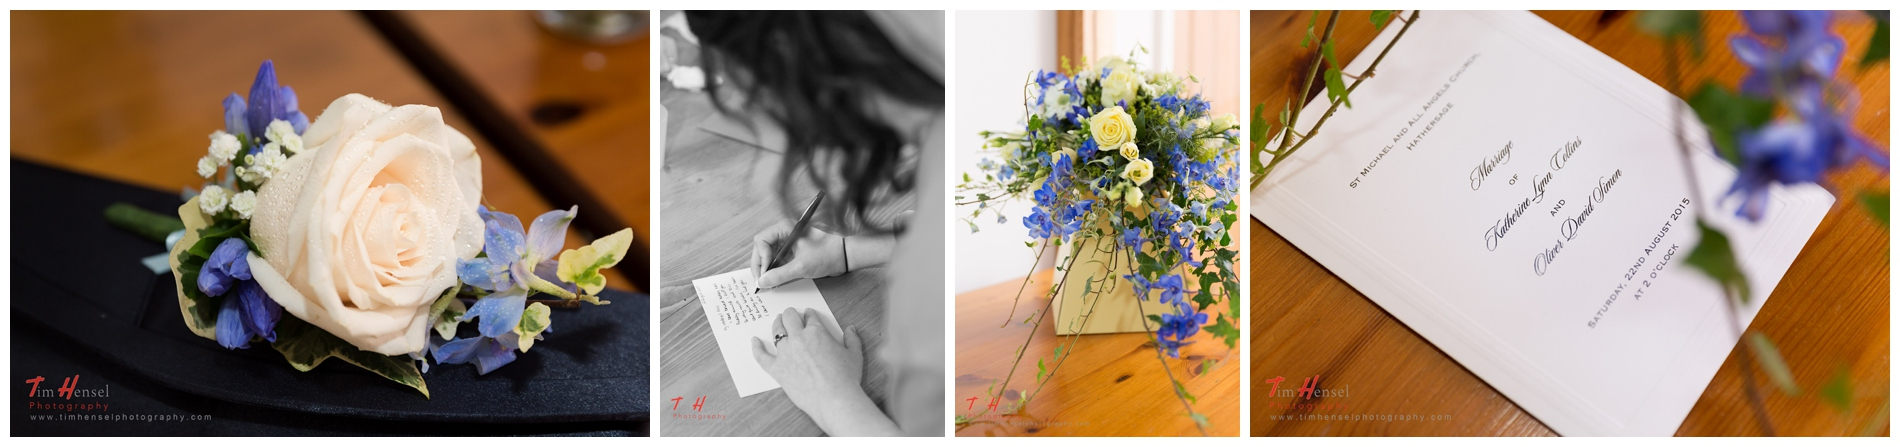 details during the bride's preparation for her wedding in derbyshire